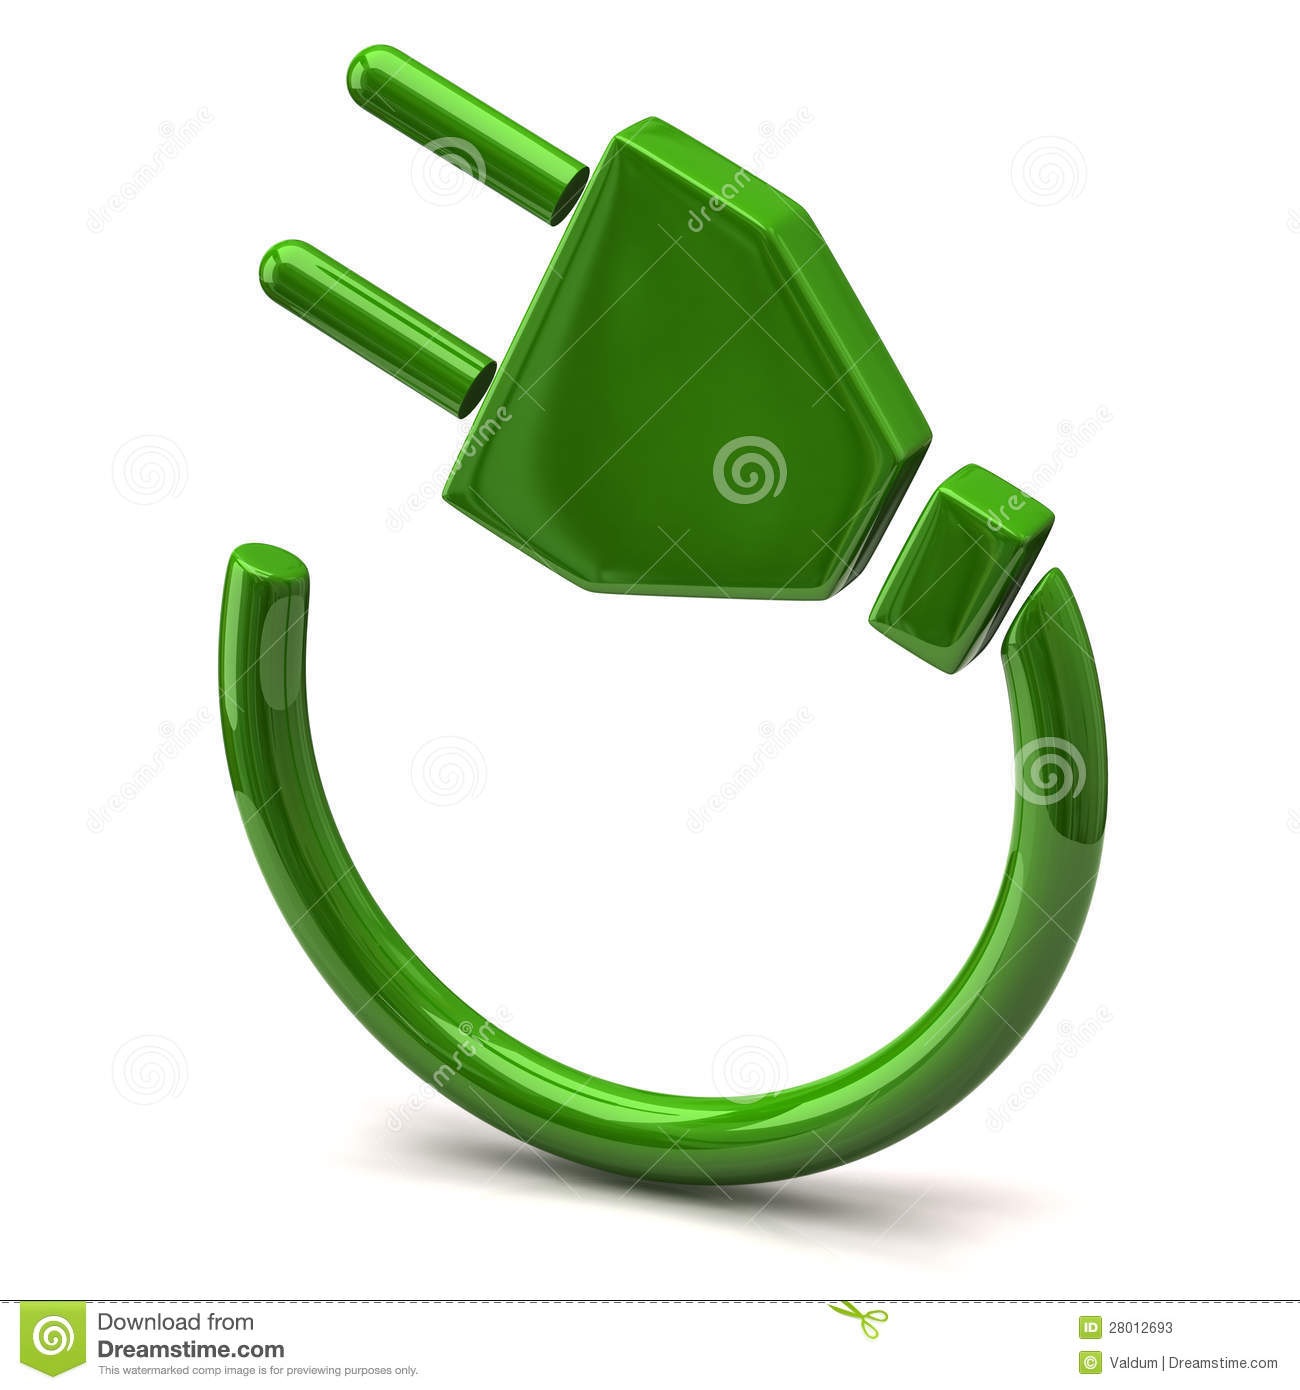 Stock Photos Green Electric Plug Icon Image28012693 on electrical cord